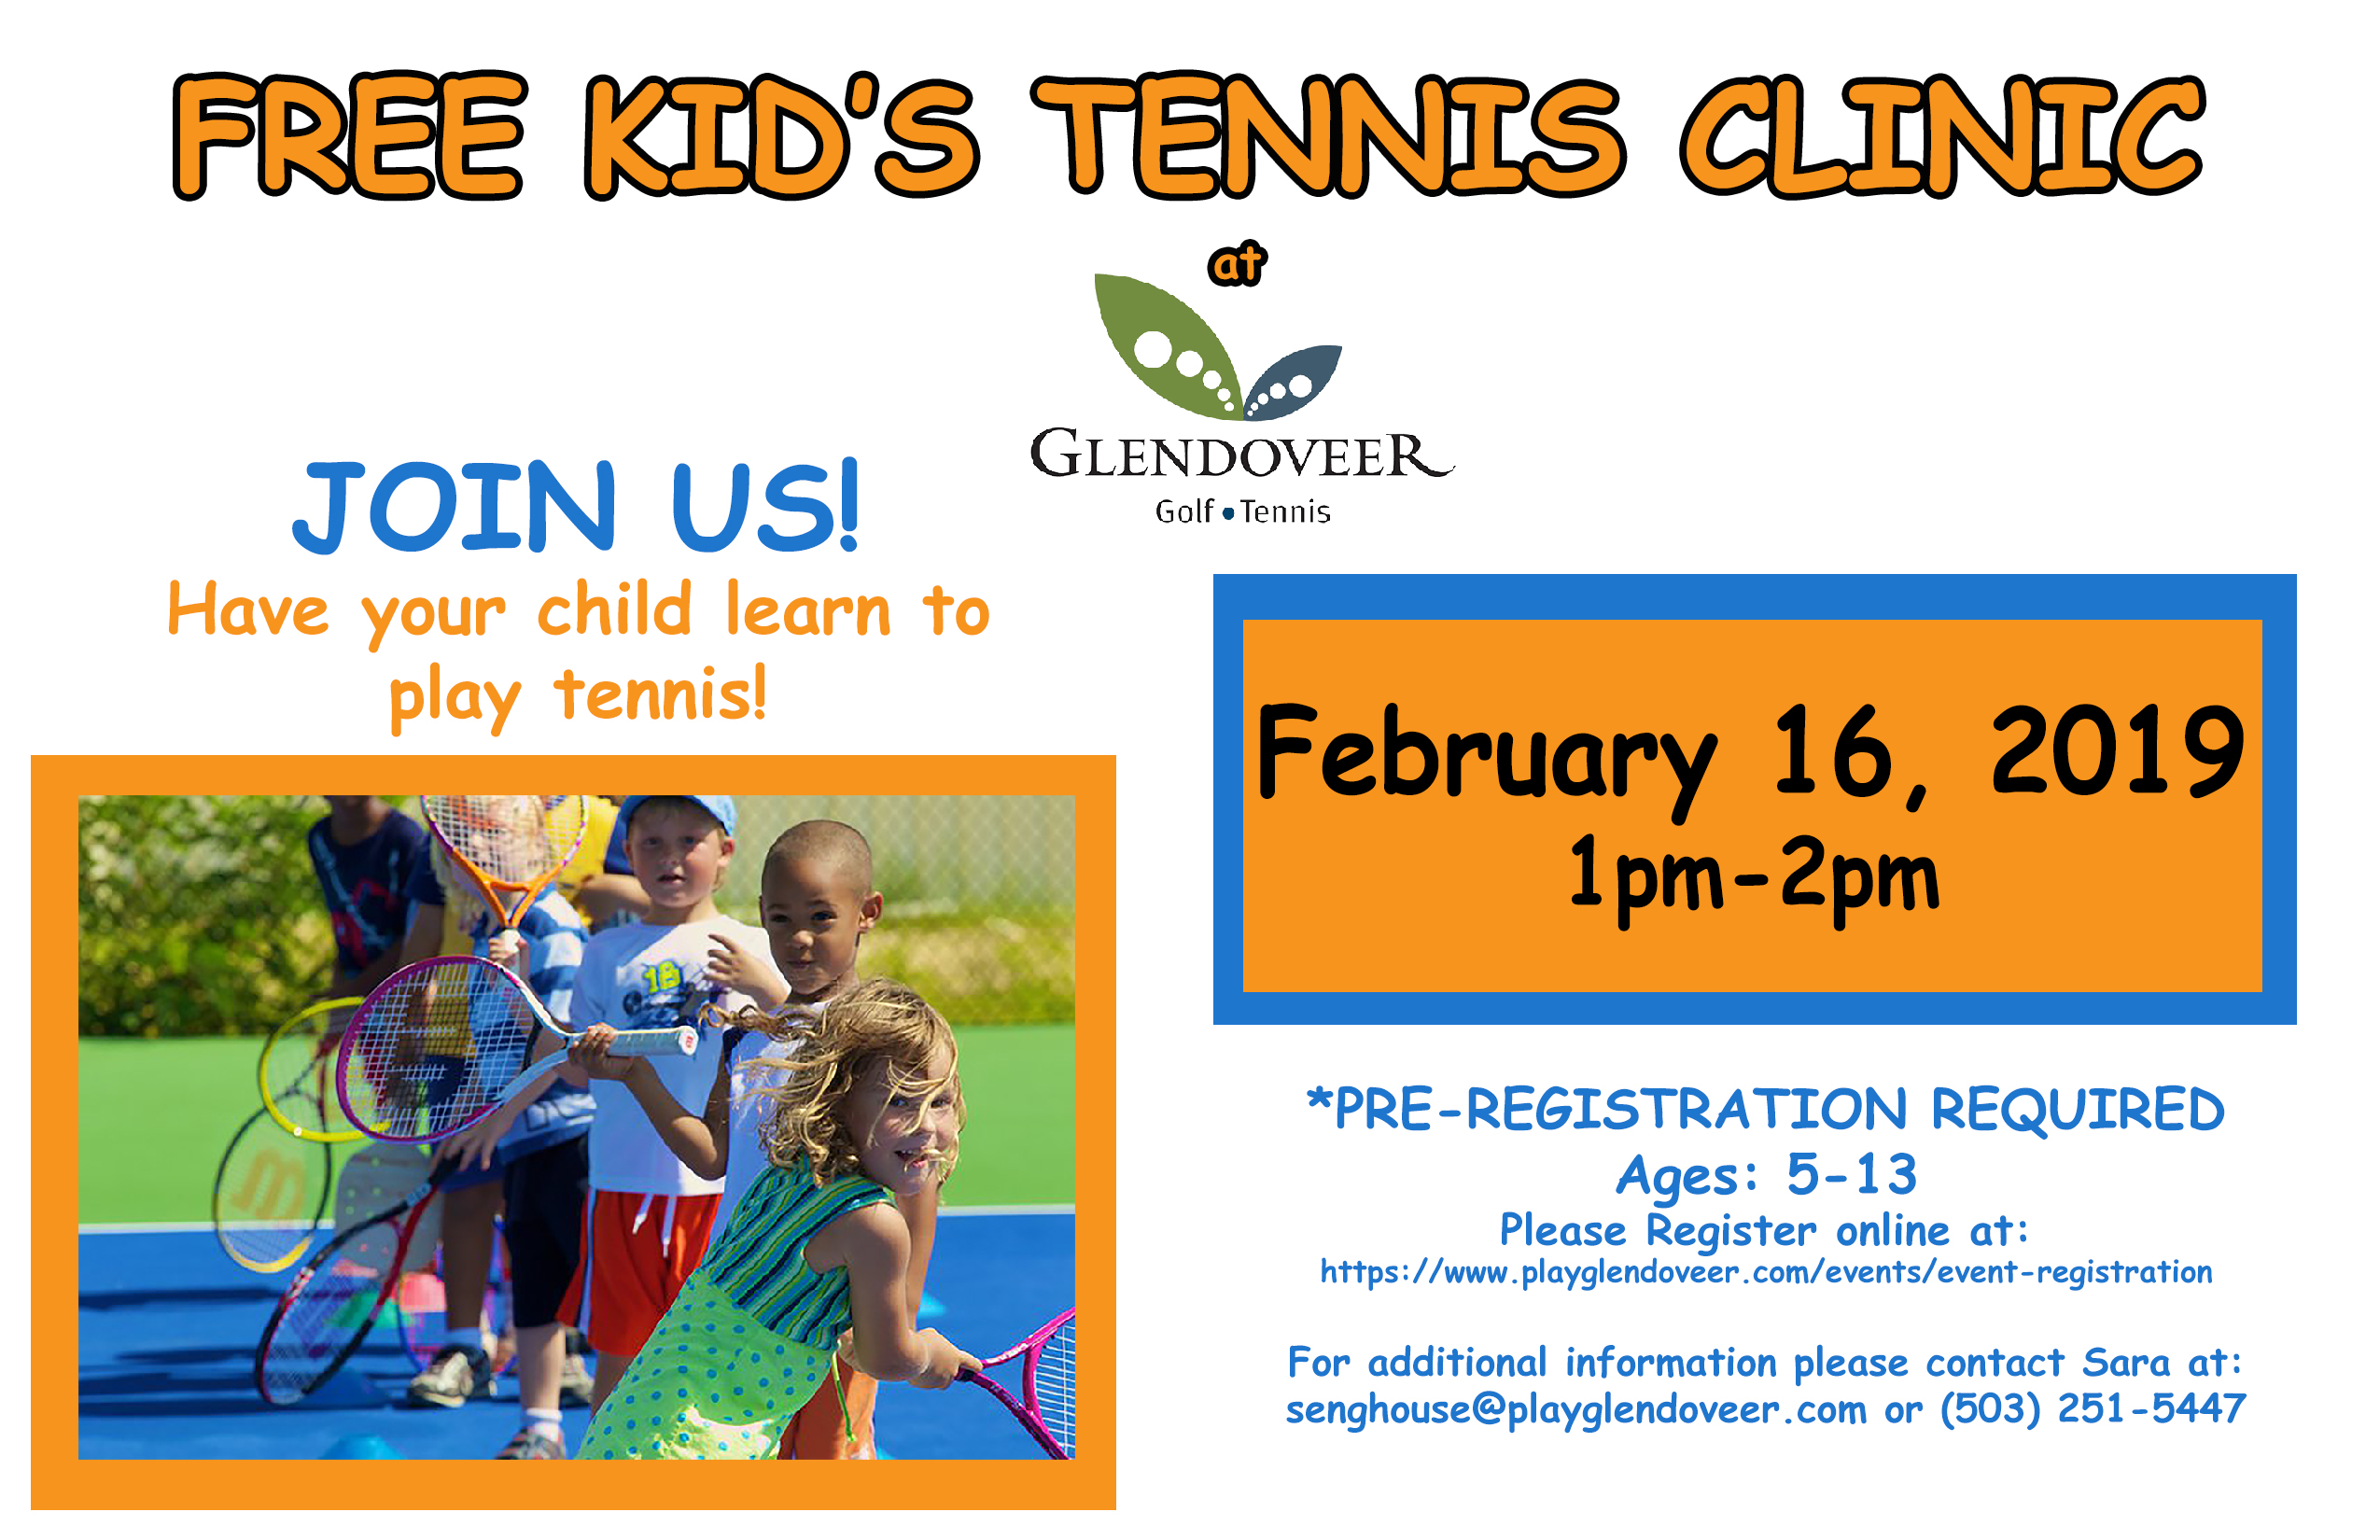 Free Kid's Tennis Clinic